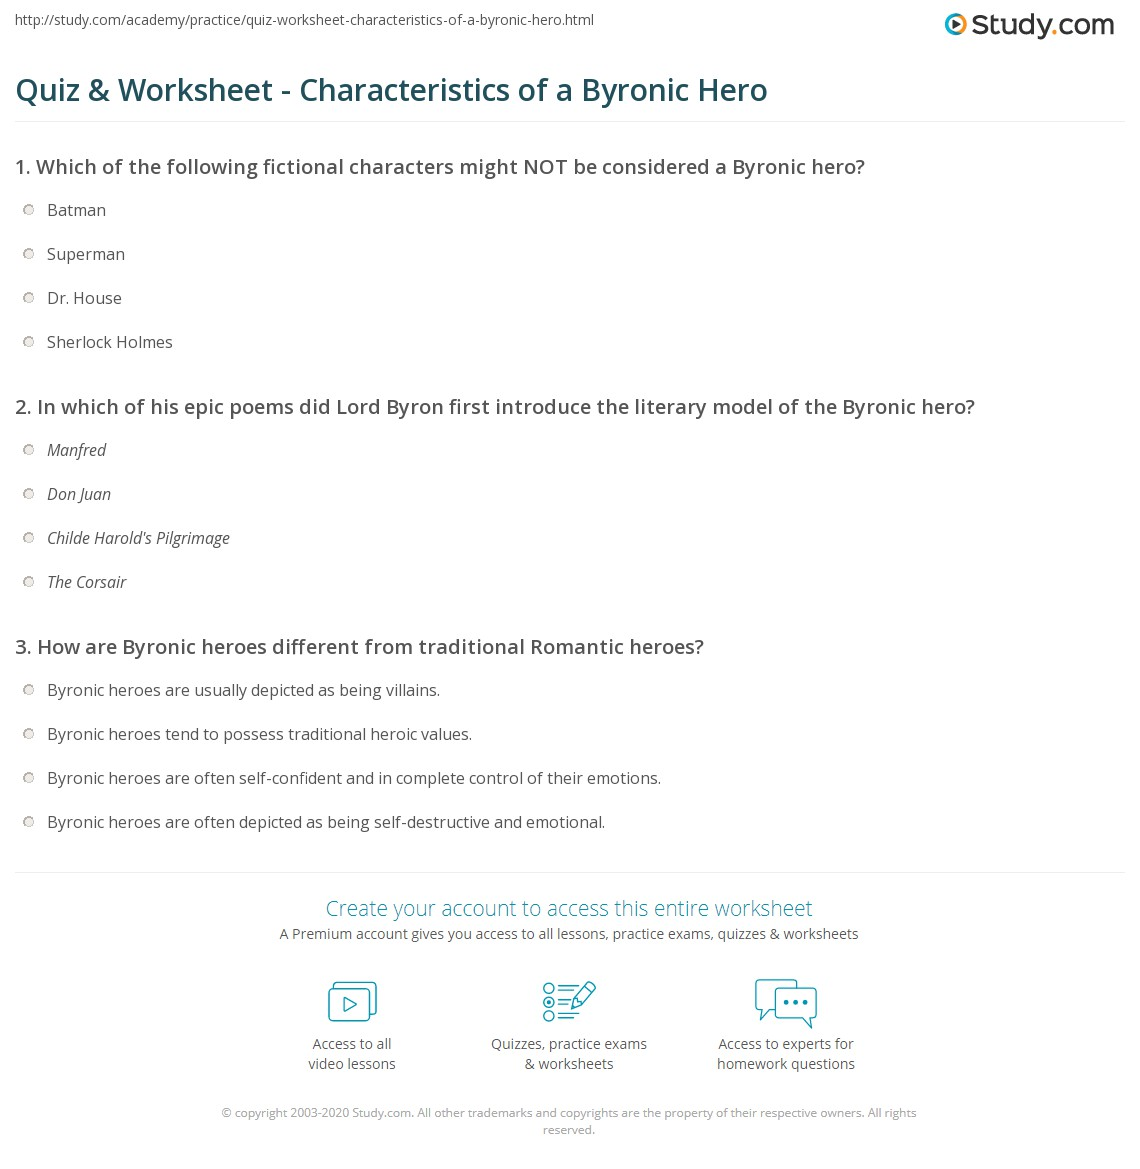 quiz worksheet characteristics of a byronic hero com print byronic hero definition characteristics examples worksheet